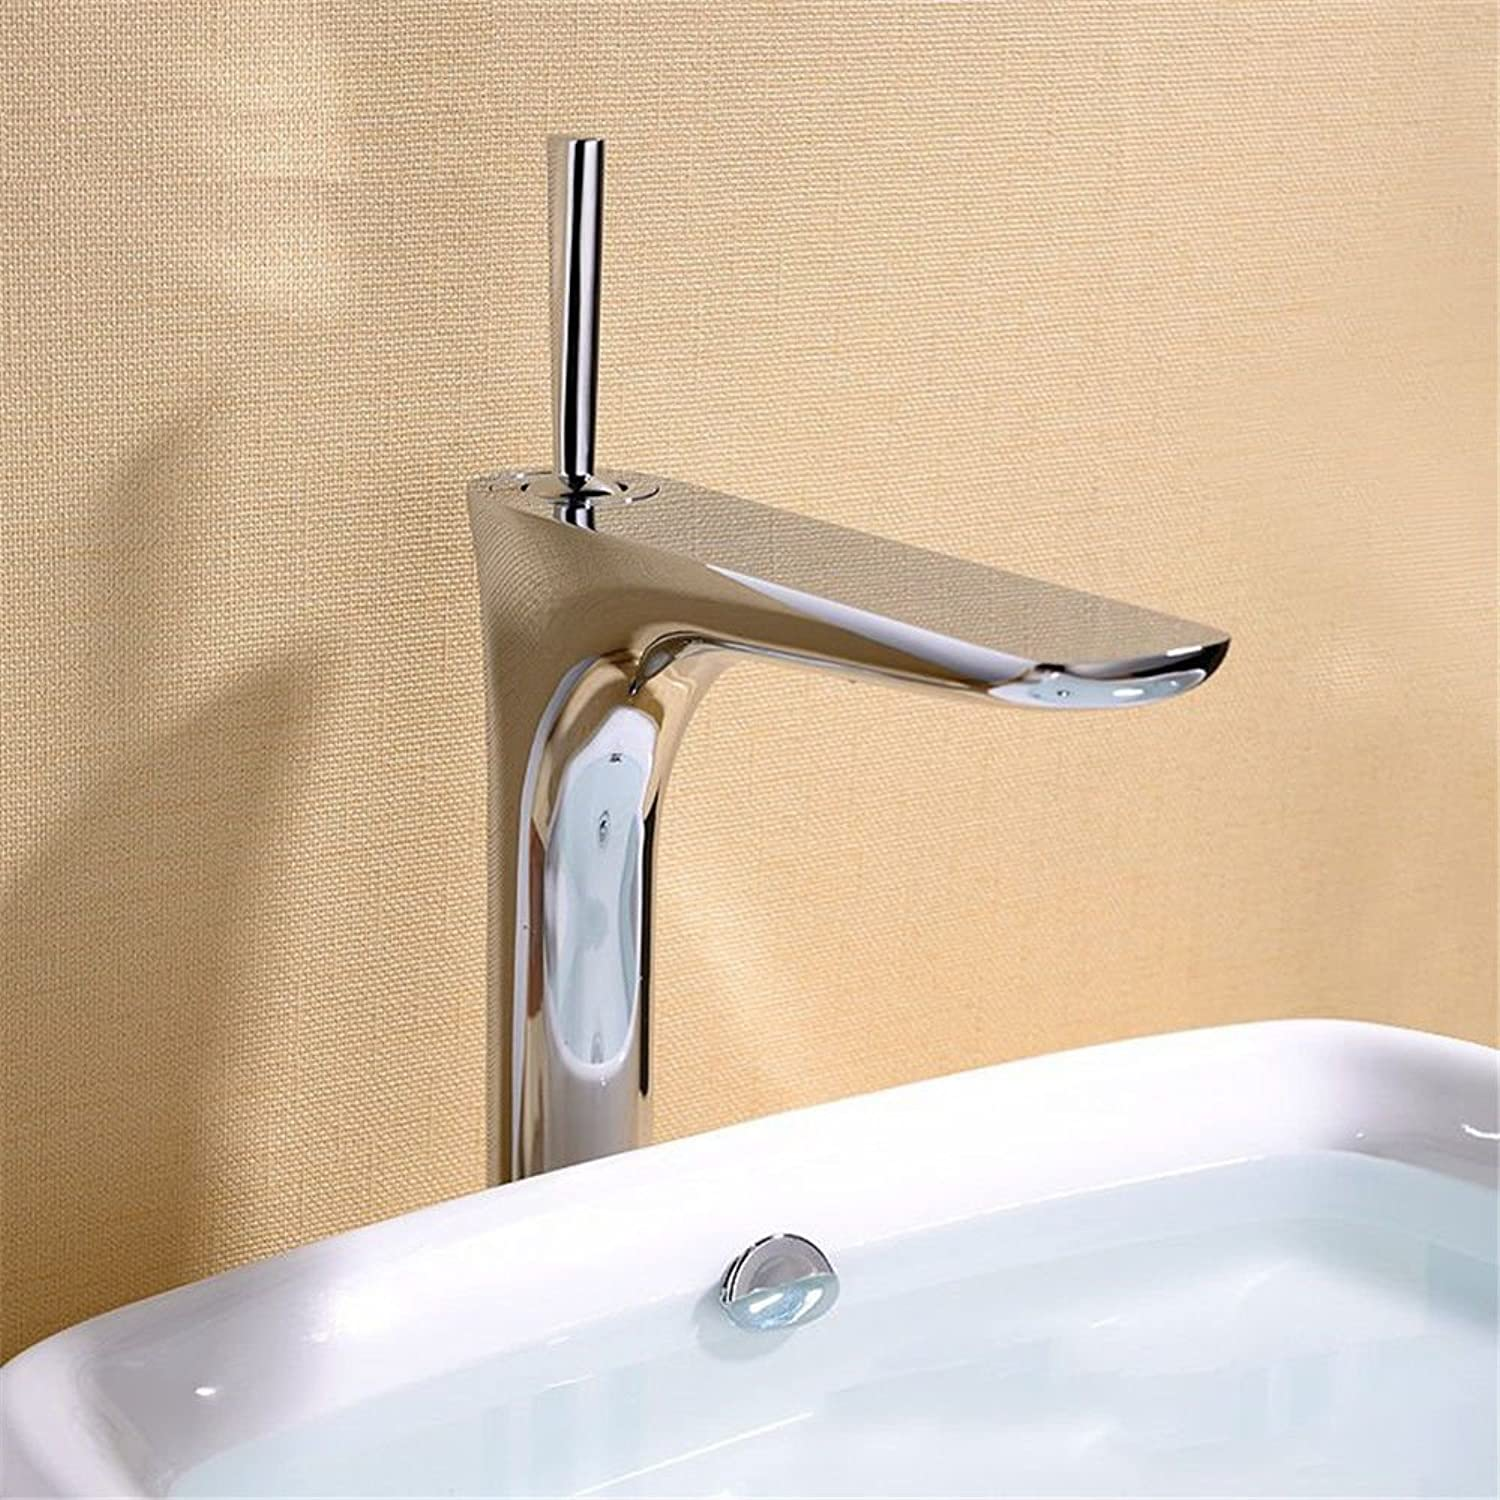 LHbox Basin Mixer Tap Bathroom Sink Faucet Continental basin faucet full copper paint oxidation green hot and cold bath faucet white plus high surface basin taps,